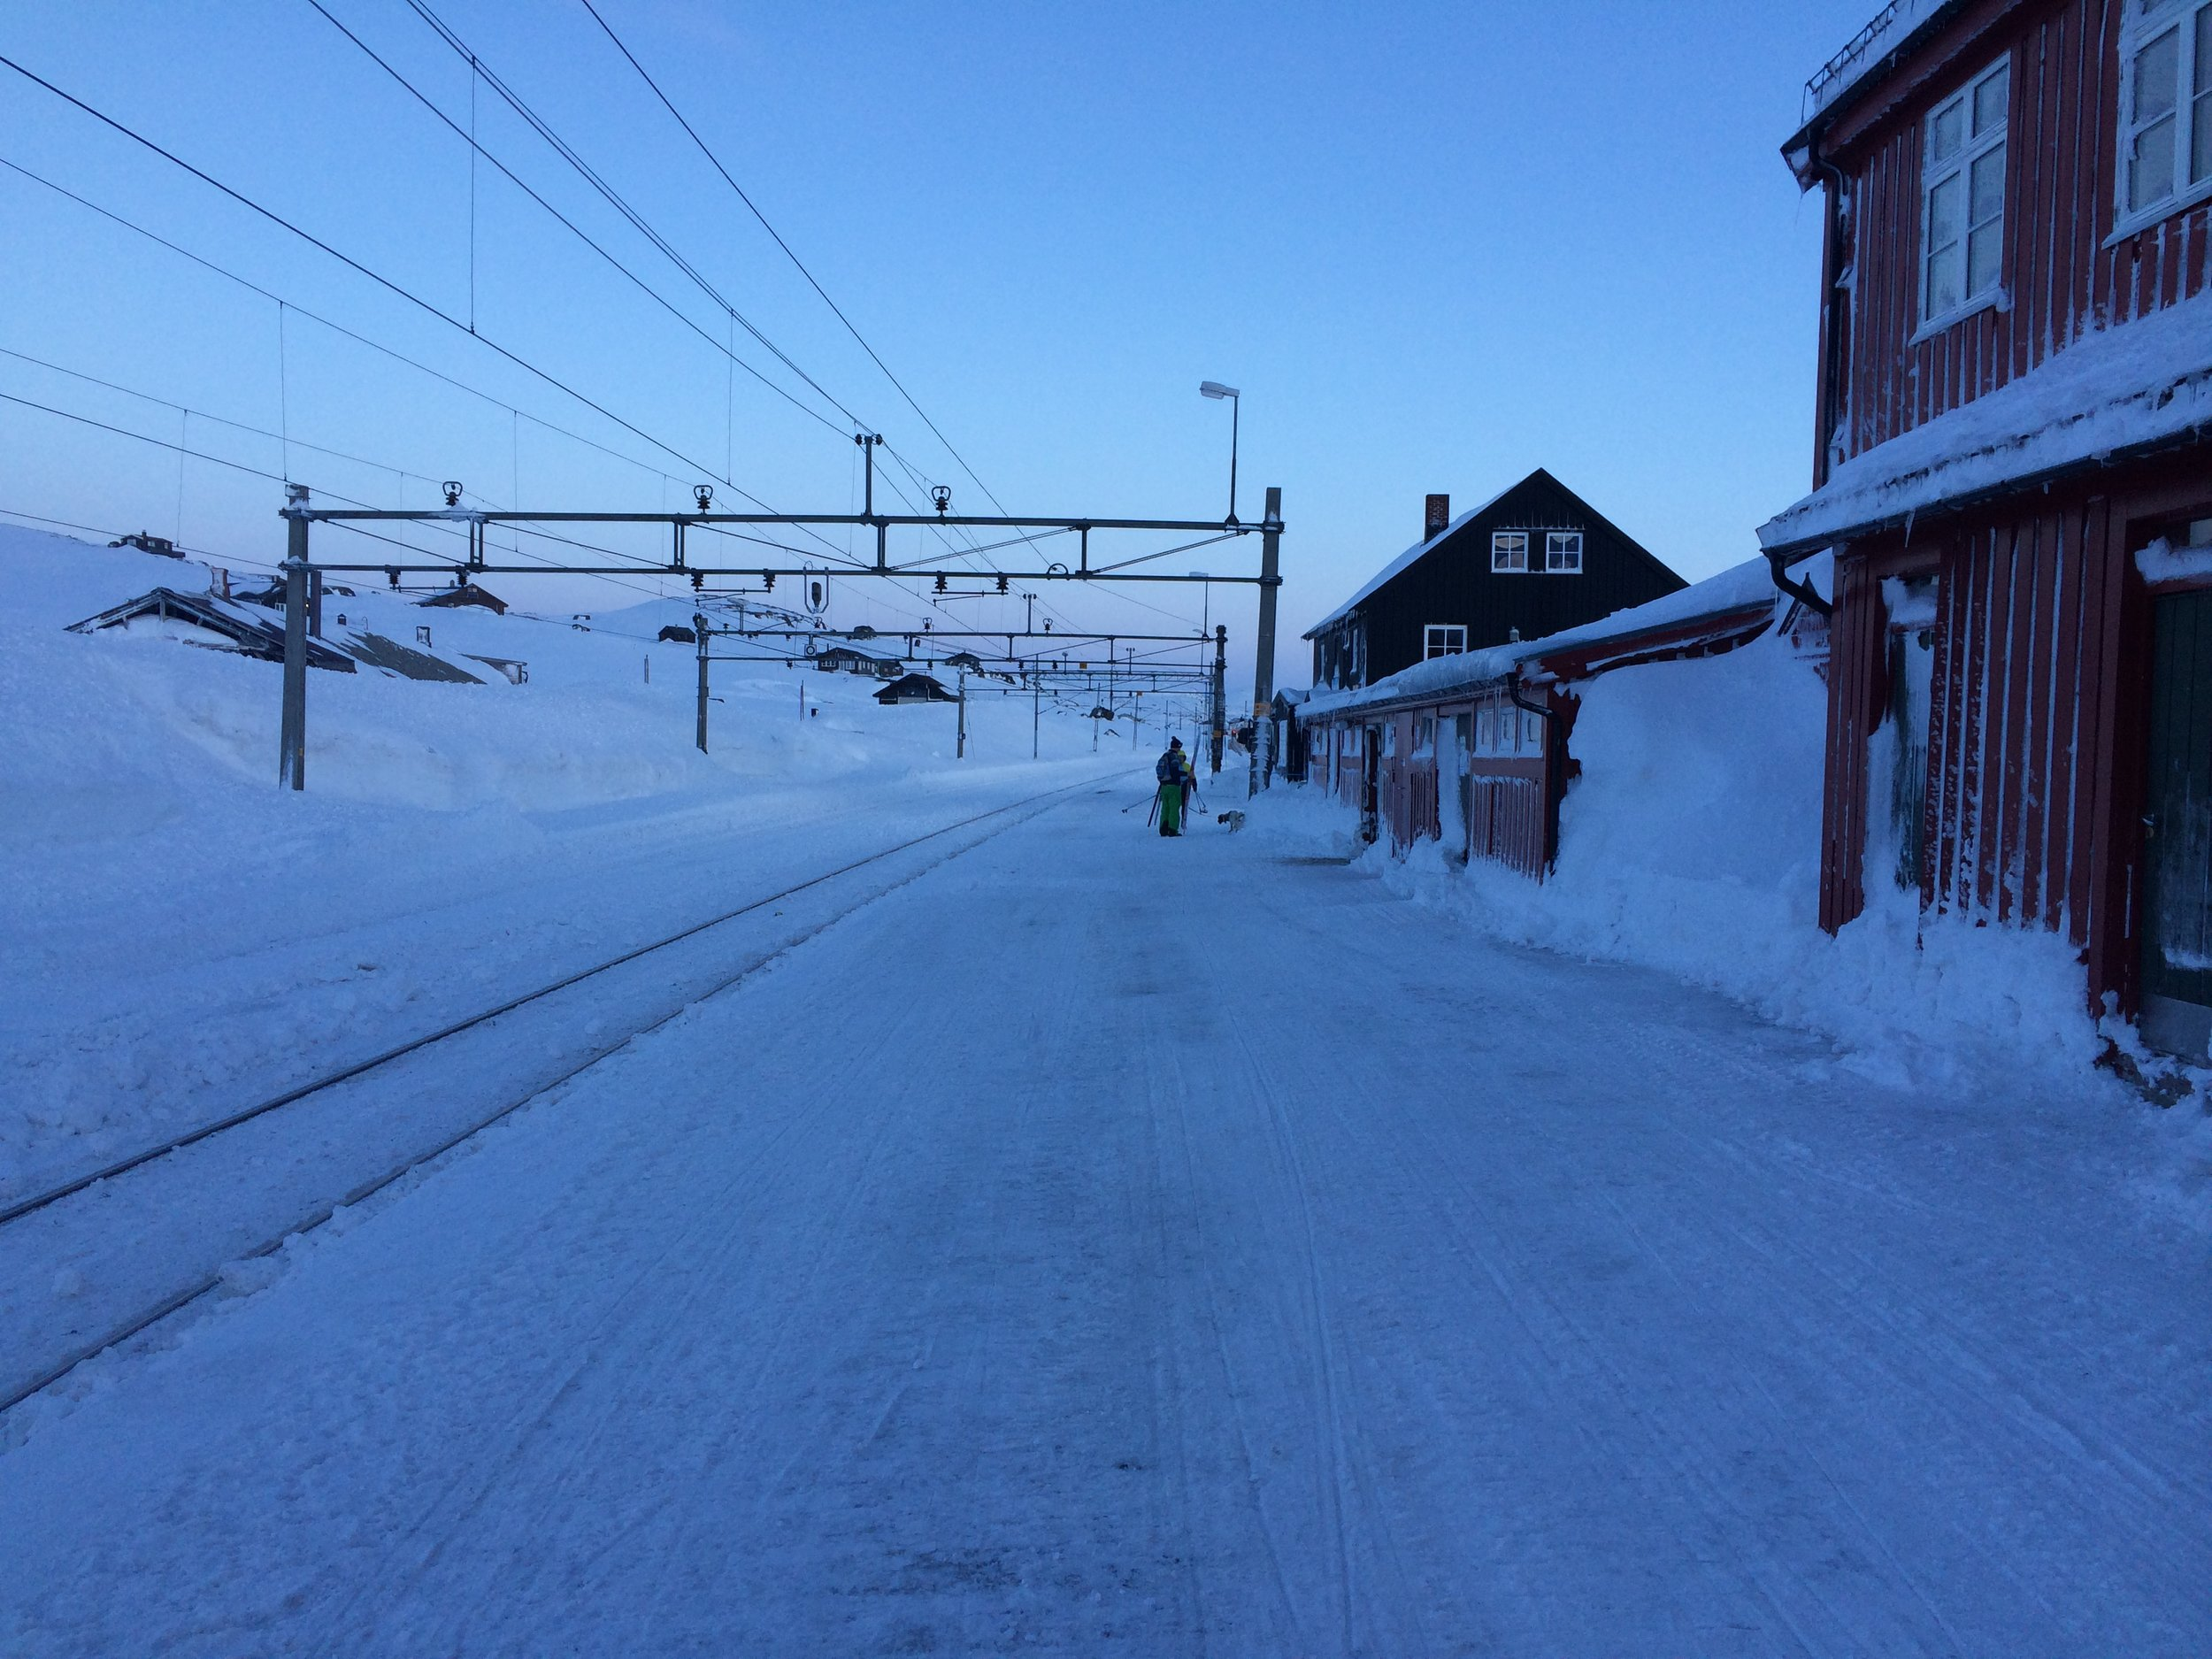 Looking back east from Finse, Norway